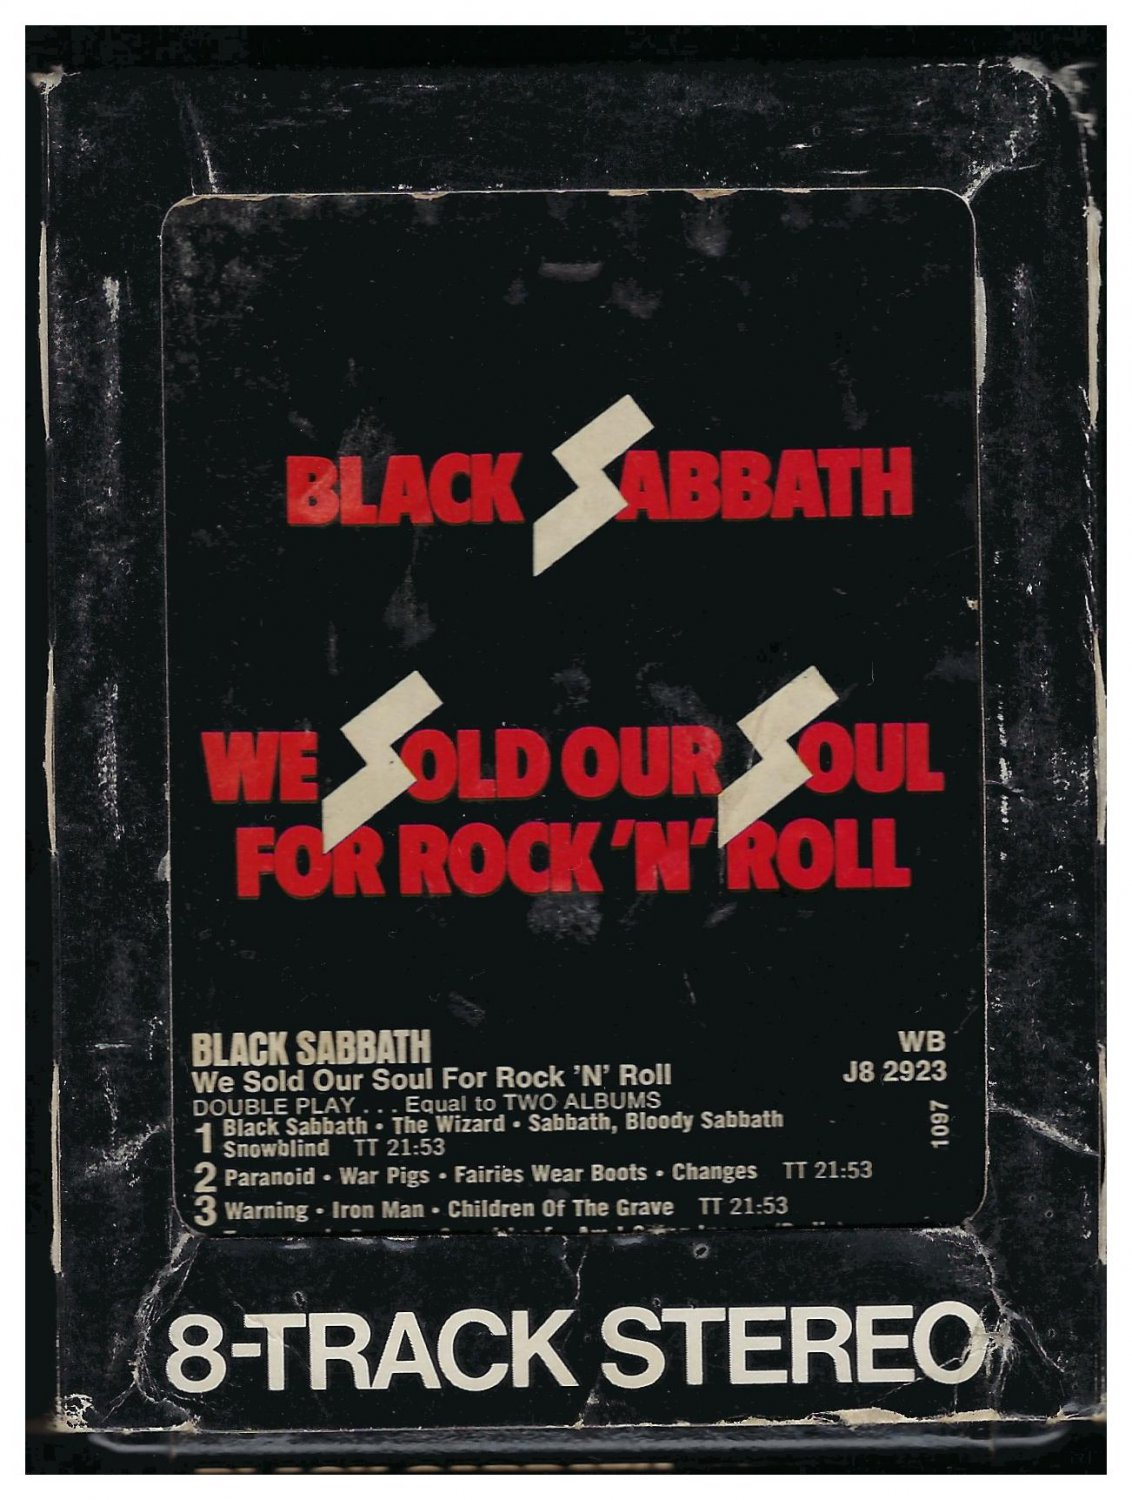 Black Sabbath - We Sold Our Soul For Rock N' Roll 1976 WB A44 8-TRACK TAPE